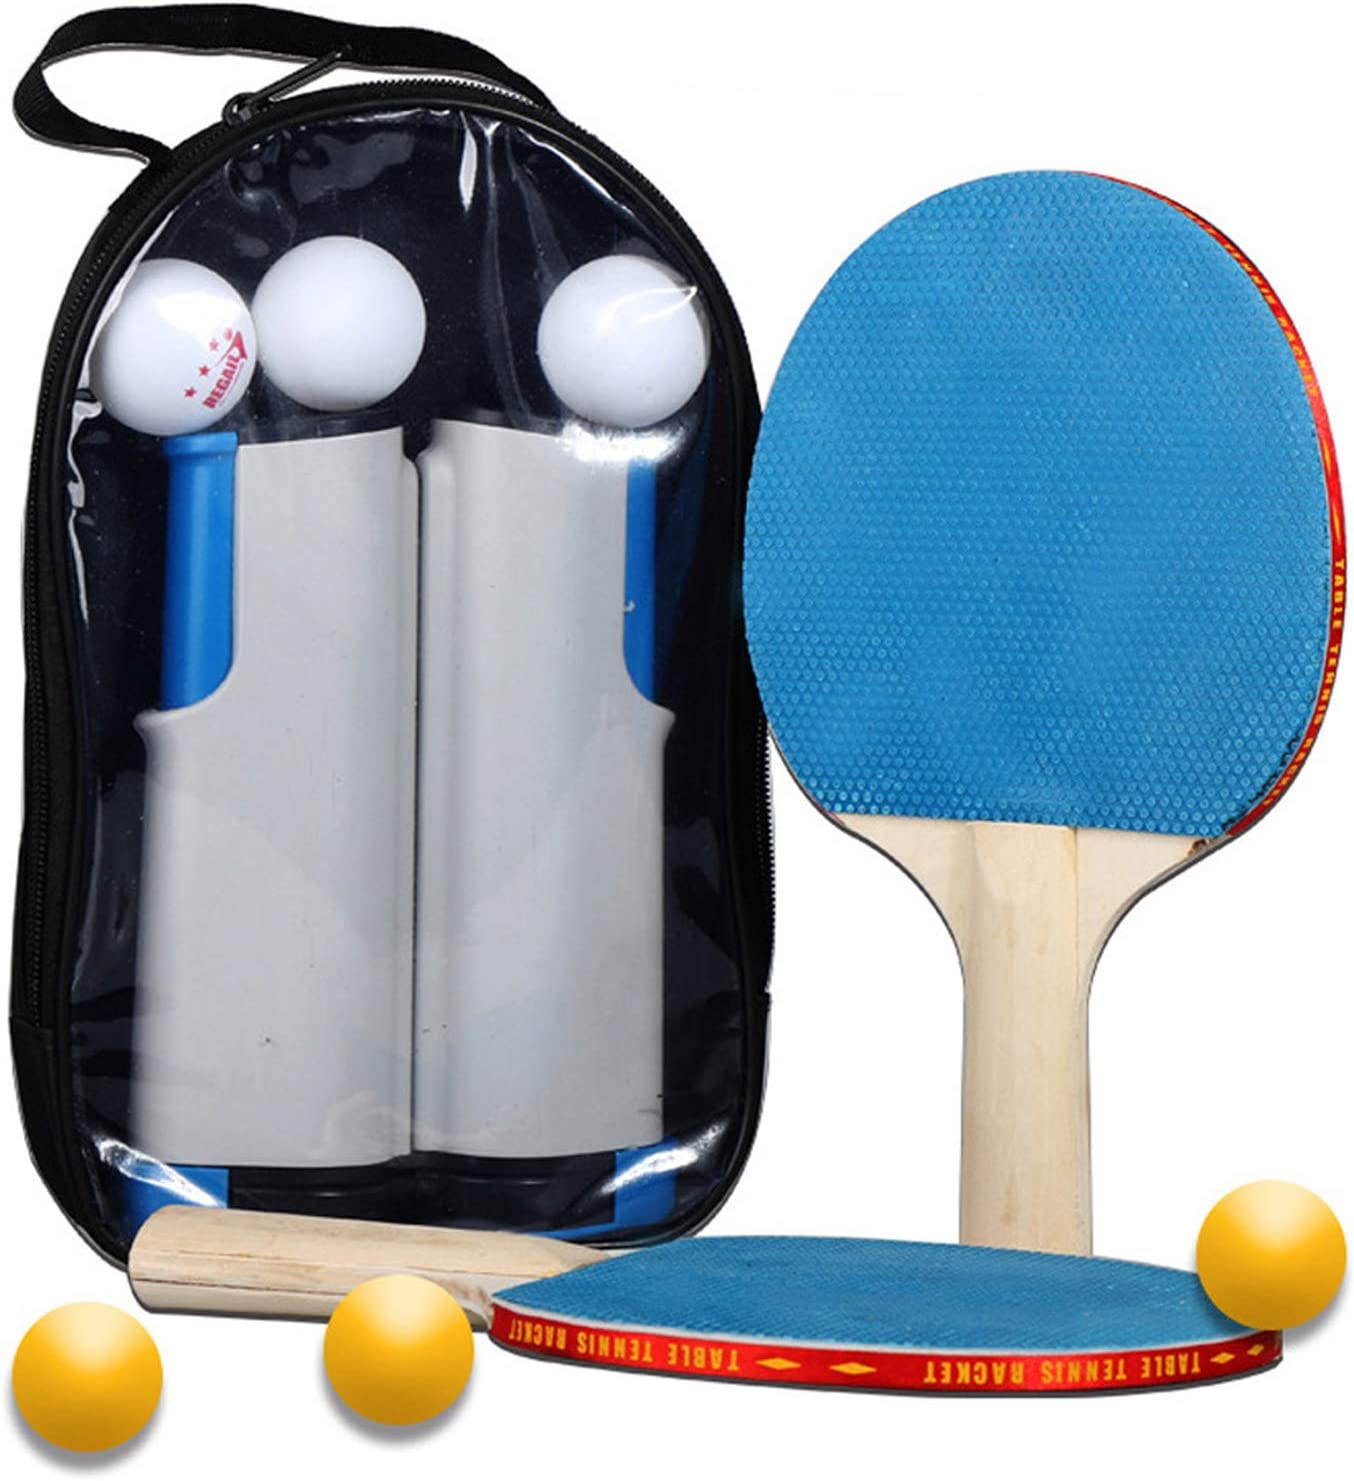 Premium Ping Pong Paddles Set of 2 Drawstring Bag 3 Table Tennis Balls LinkIdea Ping Pong Paddle Retractable Net Rubber Spin Bat Ideal for Indoor Outdoor Professional and Recreational Games